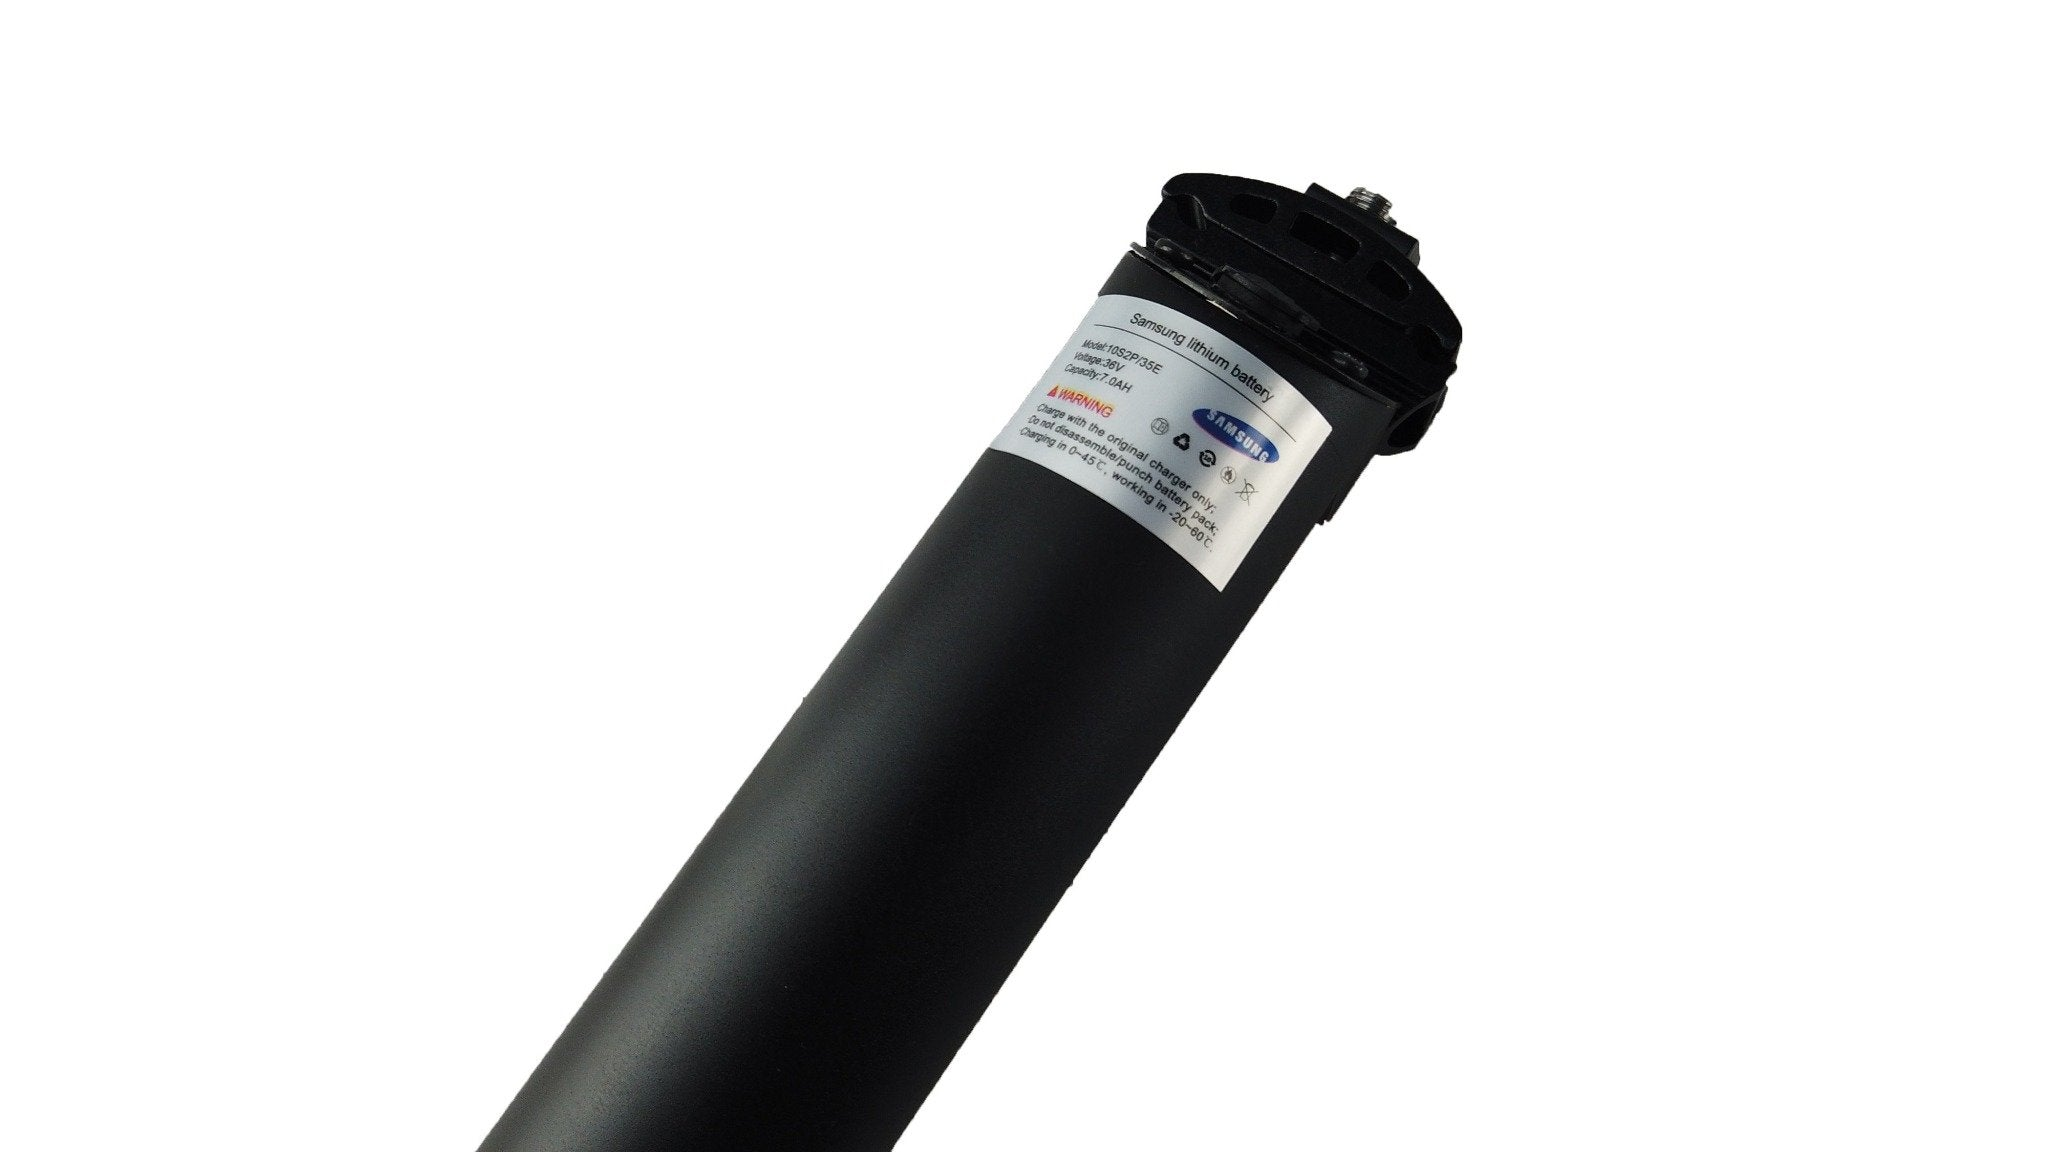 Samsung-Electric-Bike-Seat-Post-Battery-36V-7Ah-By-Qualisports